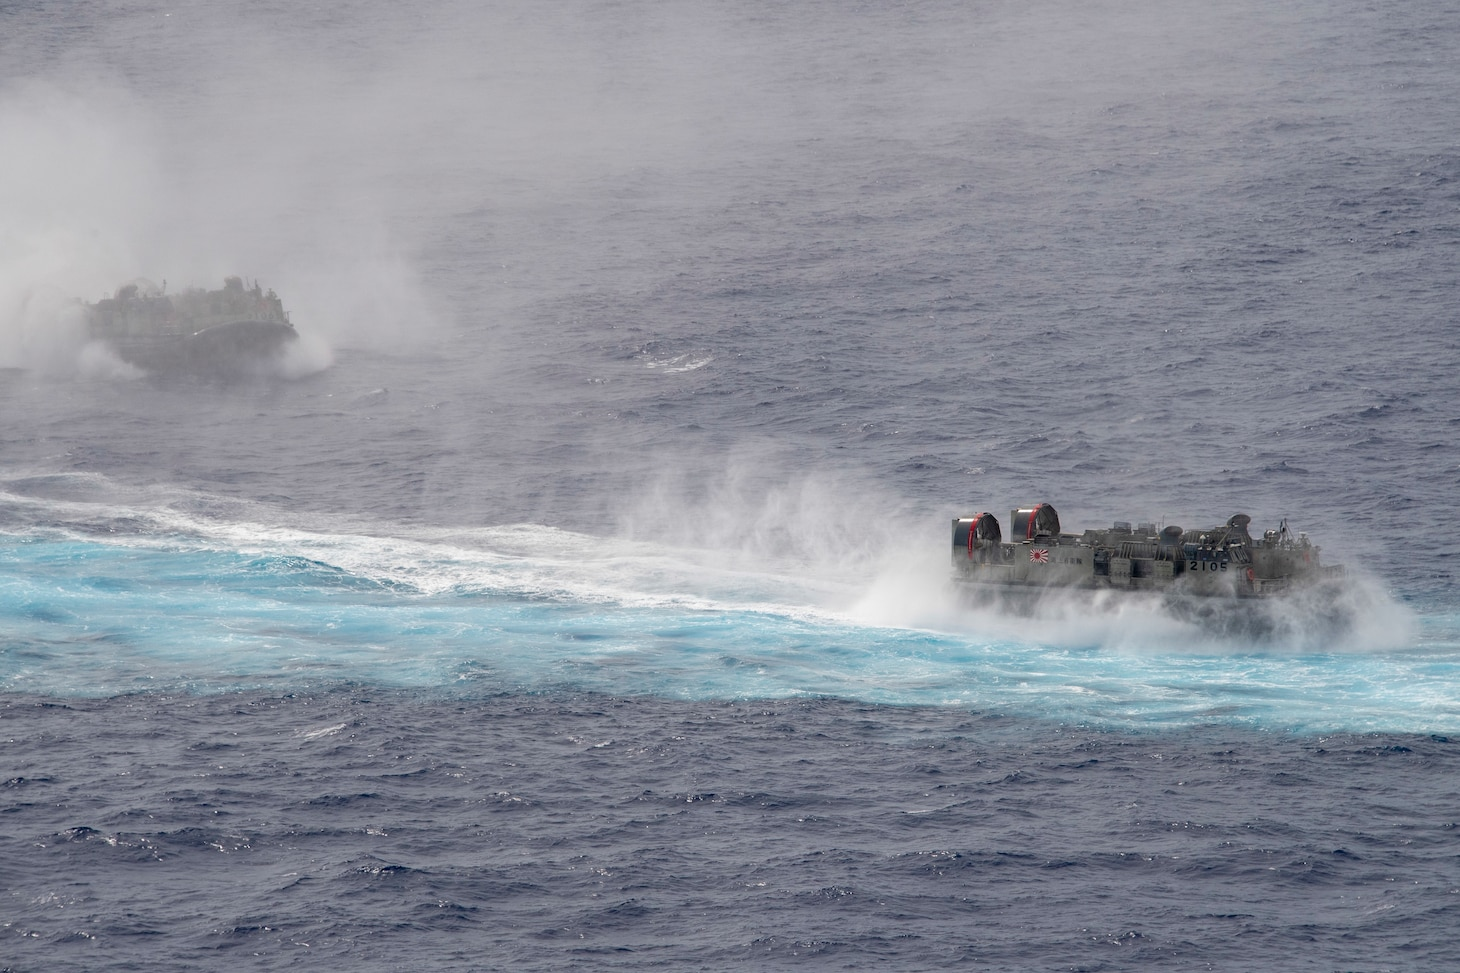 PHILIPPINE SEA (June 13, 2021) Two landing craft, air cushion from the Japan Maritime Self Defense Force sail alongside the America Amphibious Ready Group (ARG) during bilateral operations. The America ARG, along with the 31st Marine Expeditionary Unit, is operating in the U.S. 7th Fleet area of operations to enhance interoperability with allies and partners and serve as a ready response force to defend peace and stability in the Indo-Pacific region.